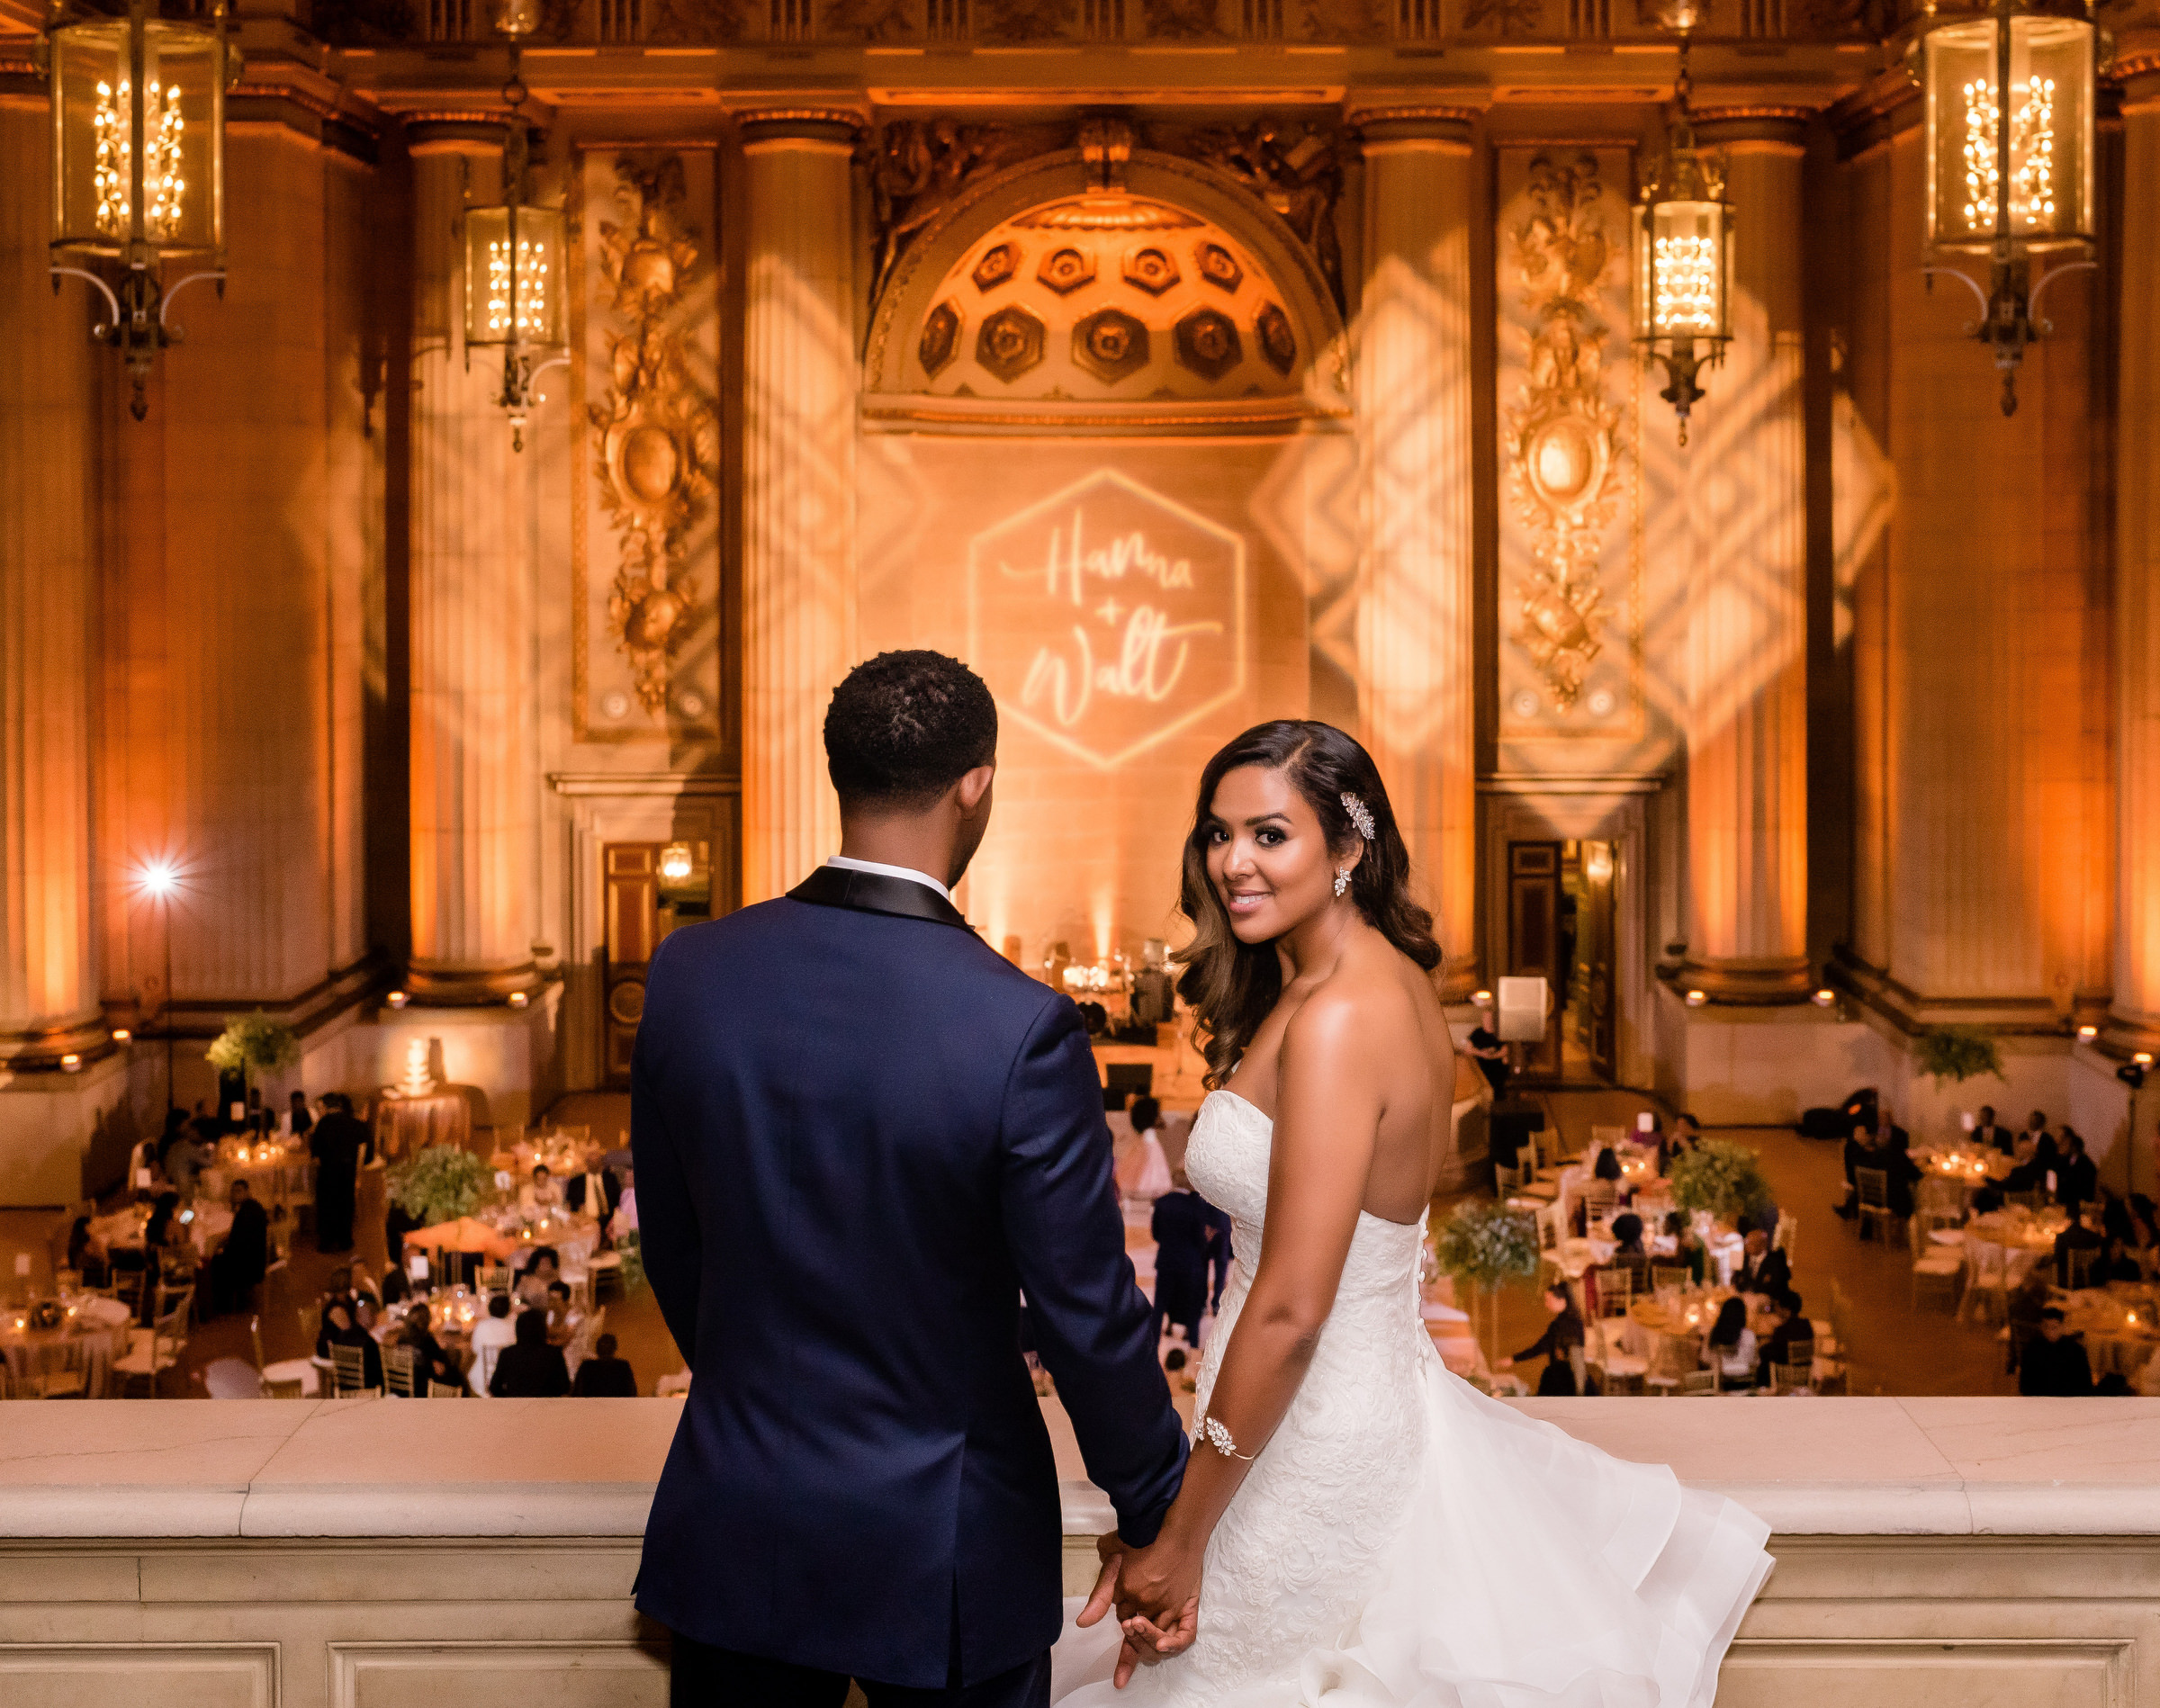 Couple looking down at reception tables from balcony - photo by Kirth Bobb Photography